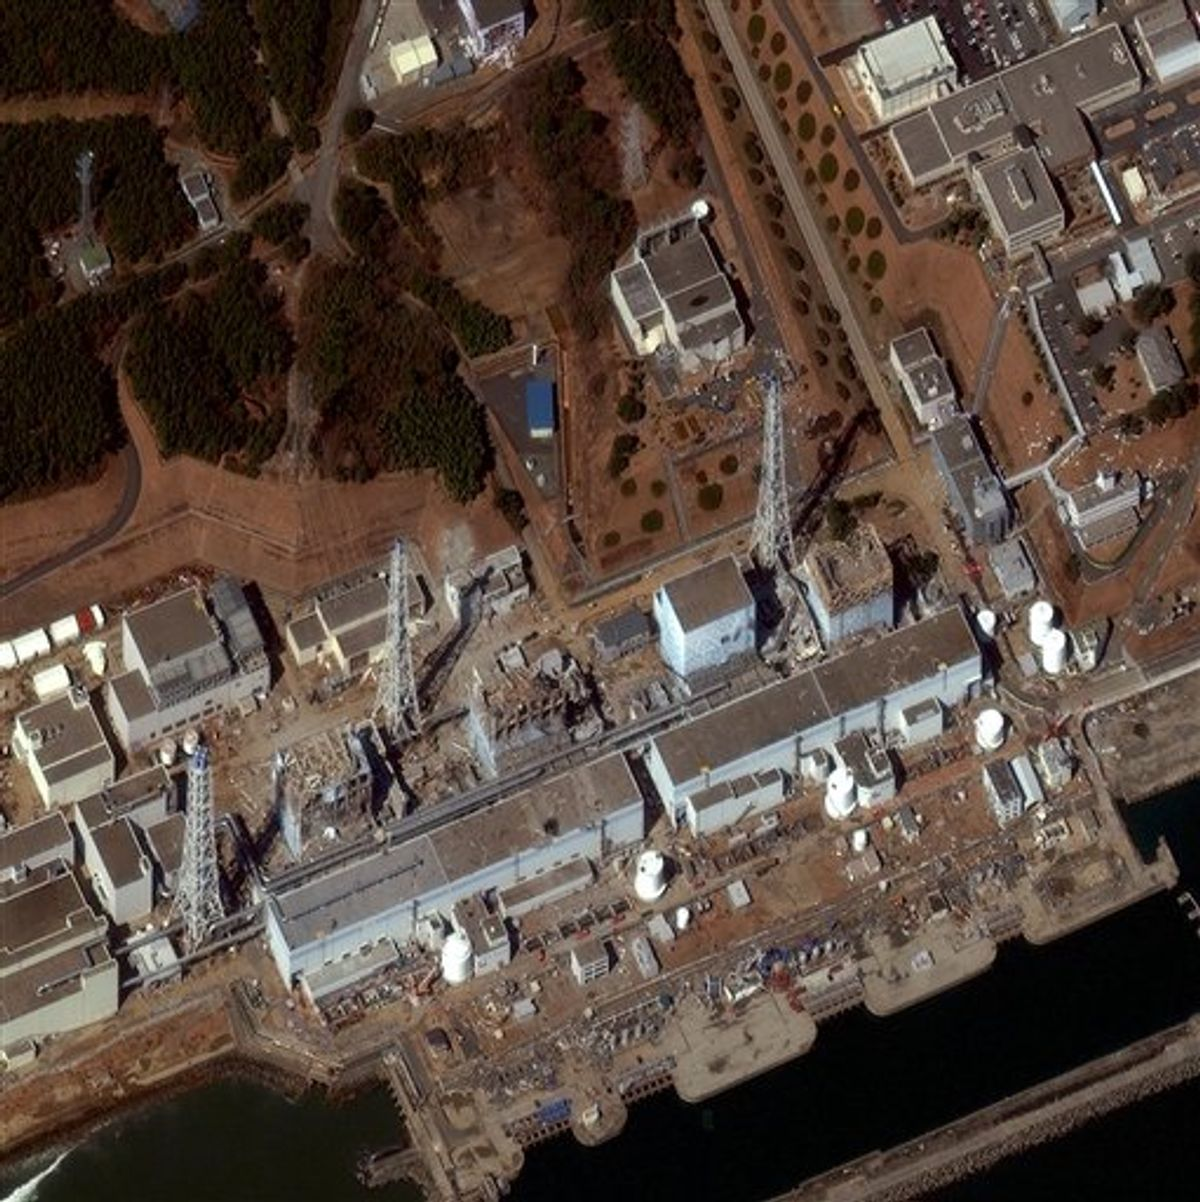 """In this Friday, March 18, 2011 satellite image released by DigitalGlobe, the Fukushima Dai-ichi is shown.  Sirens wailed Friday along a devastated coastline to mark exactly one week since an earthquake and tsunami triggered a nuclear emergency, and the government acknowledged it was slow to respond to the disasters that the prime minister called a """"great test for the Japanese people."""" The admission came as Japan welcomed U.S. help in stabilizing its overheated, radiation-leaking Fukushima Dai-ichi nuclear complex and raised the accident level for the crisis, putting it on a par with the 1979 Three Mile Island accident in Pennsylvania. (AP Photo/DigitalGlobe) NO SALES (AP)"""